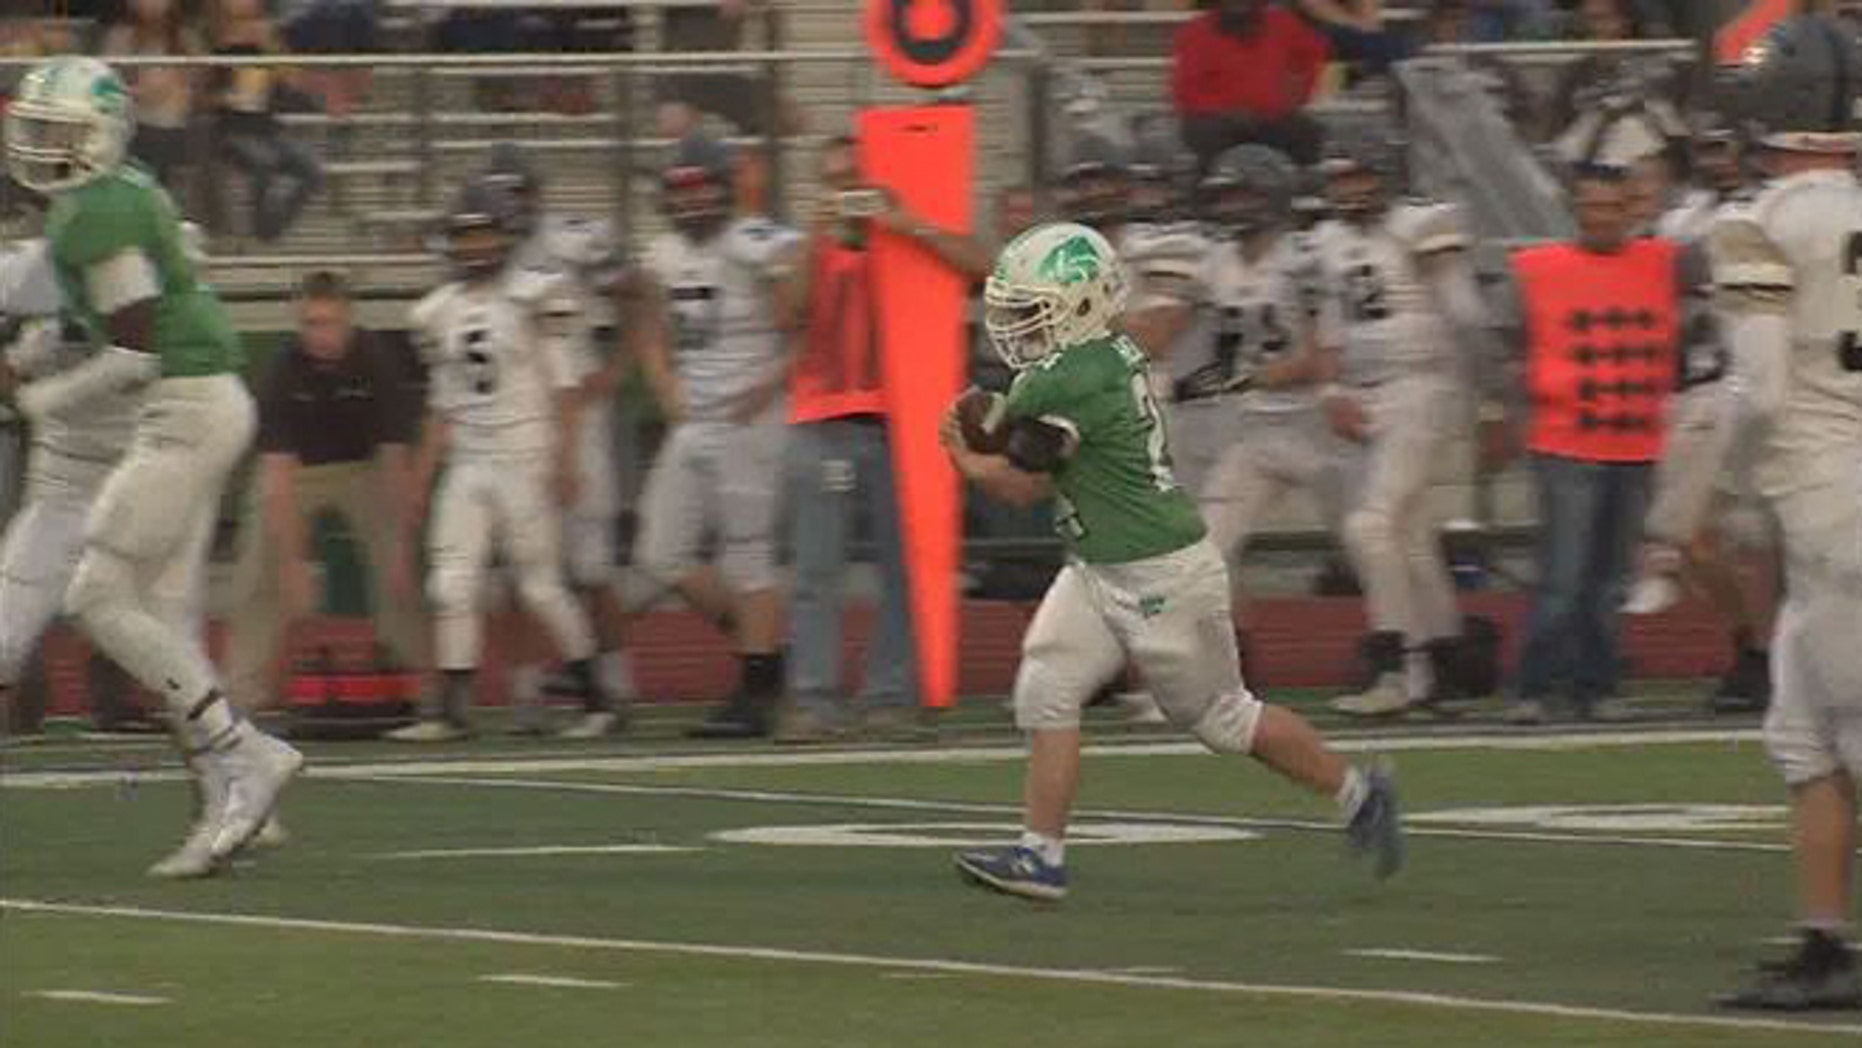 Robby Heil scoring touchdown for Novi High School Friday. (Fox 2 Detroit)